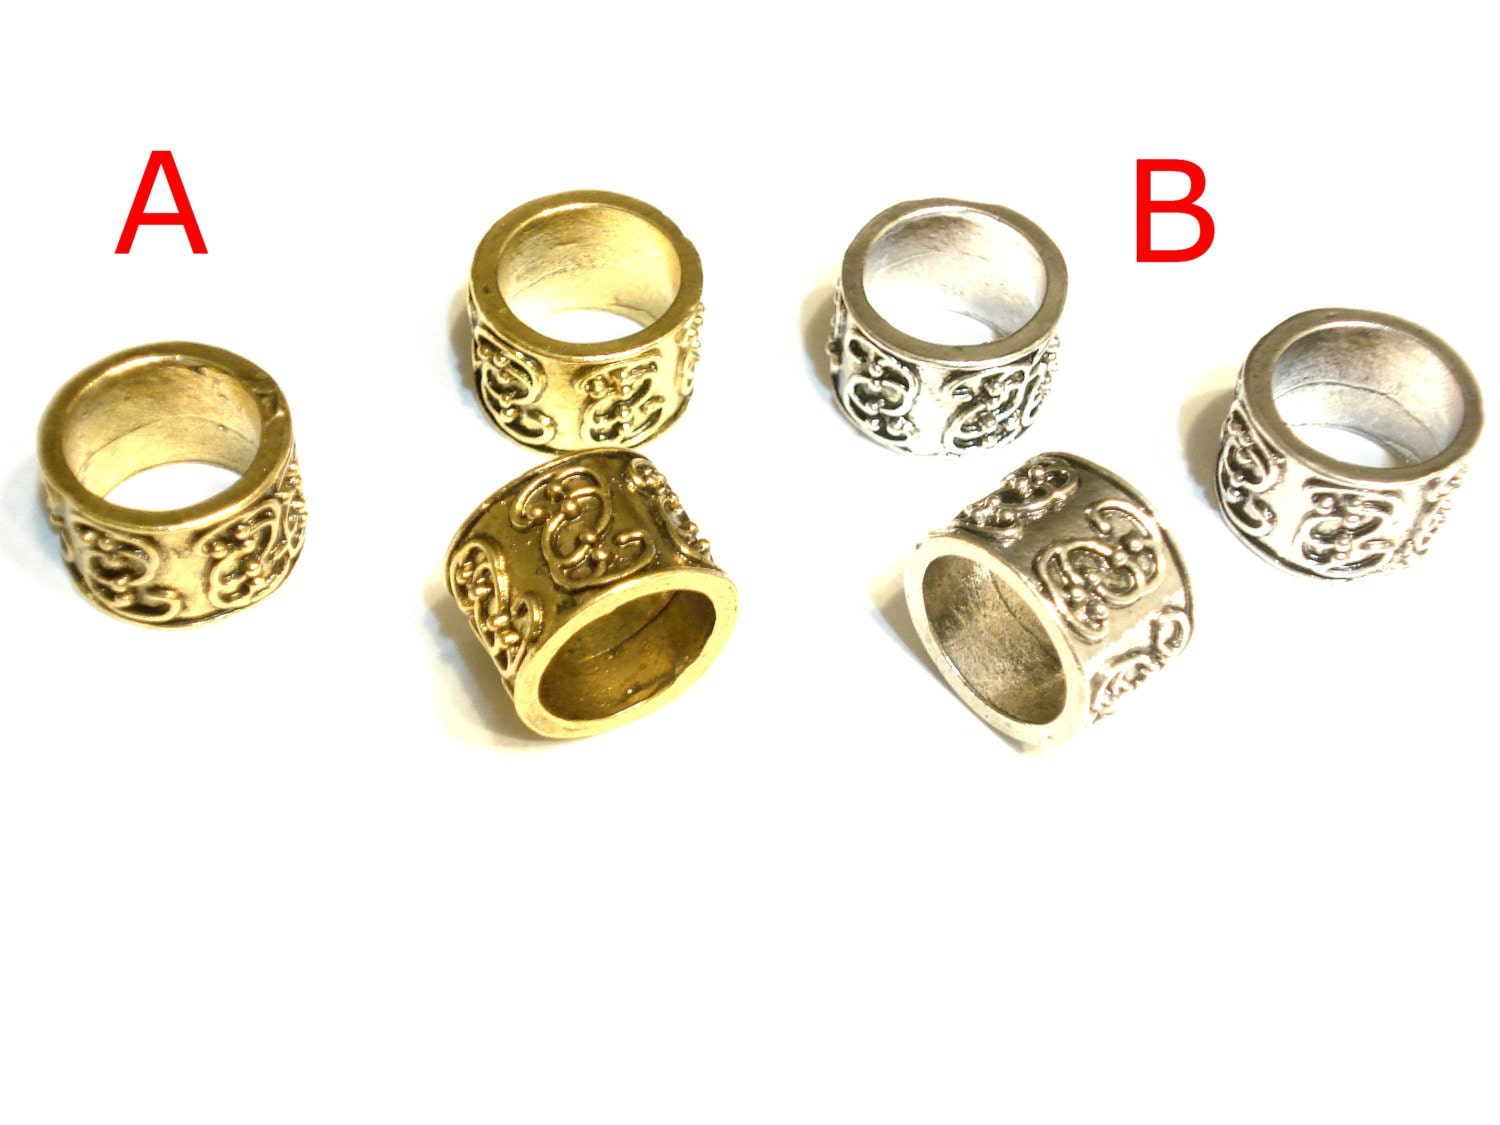 unique metal scarf rings silver gold tone available sold 6